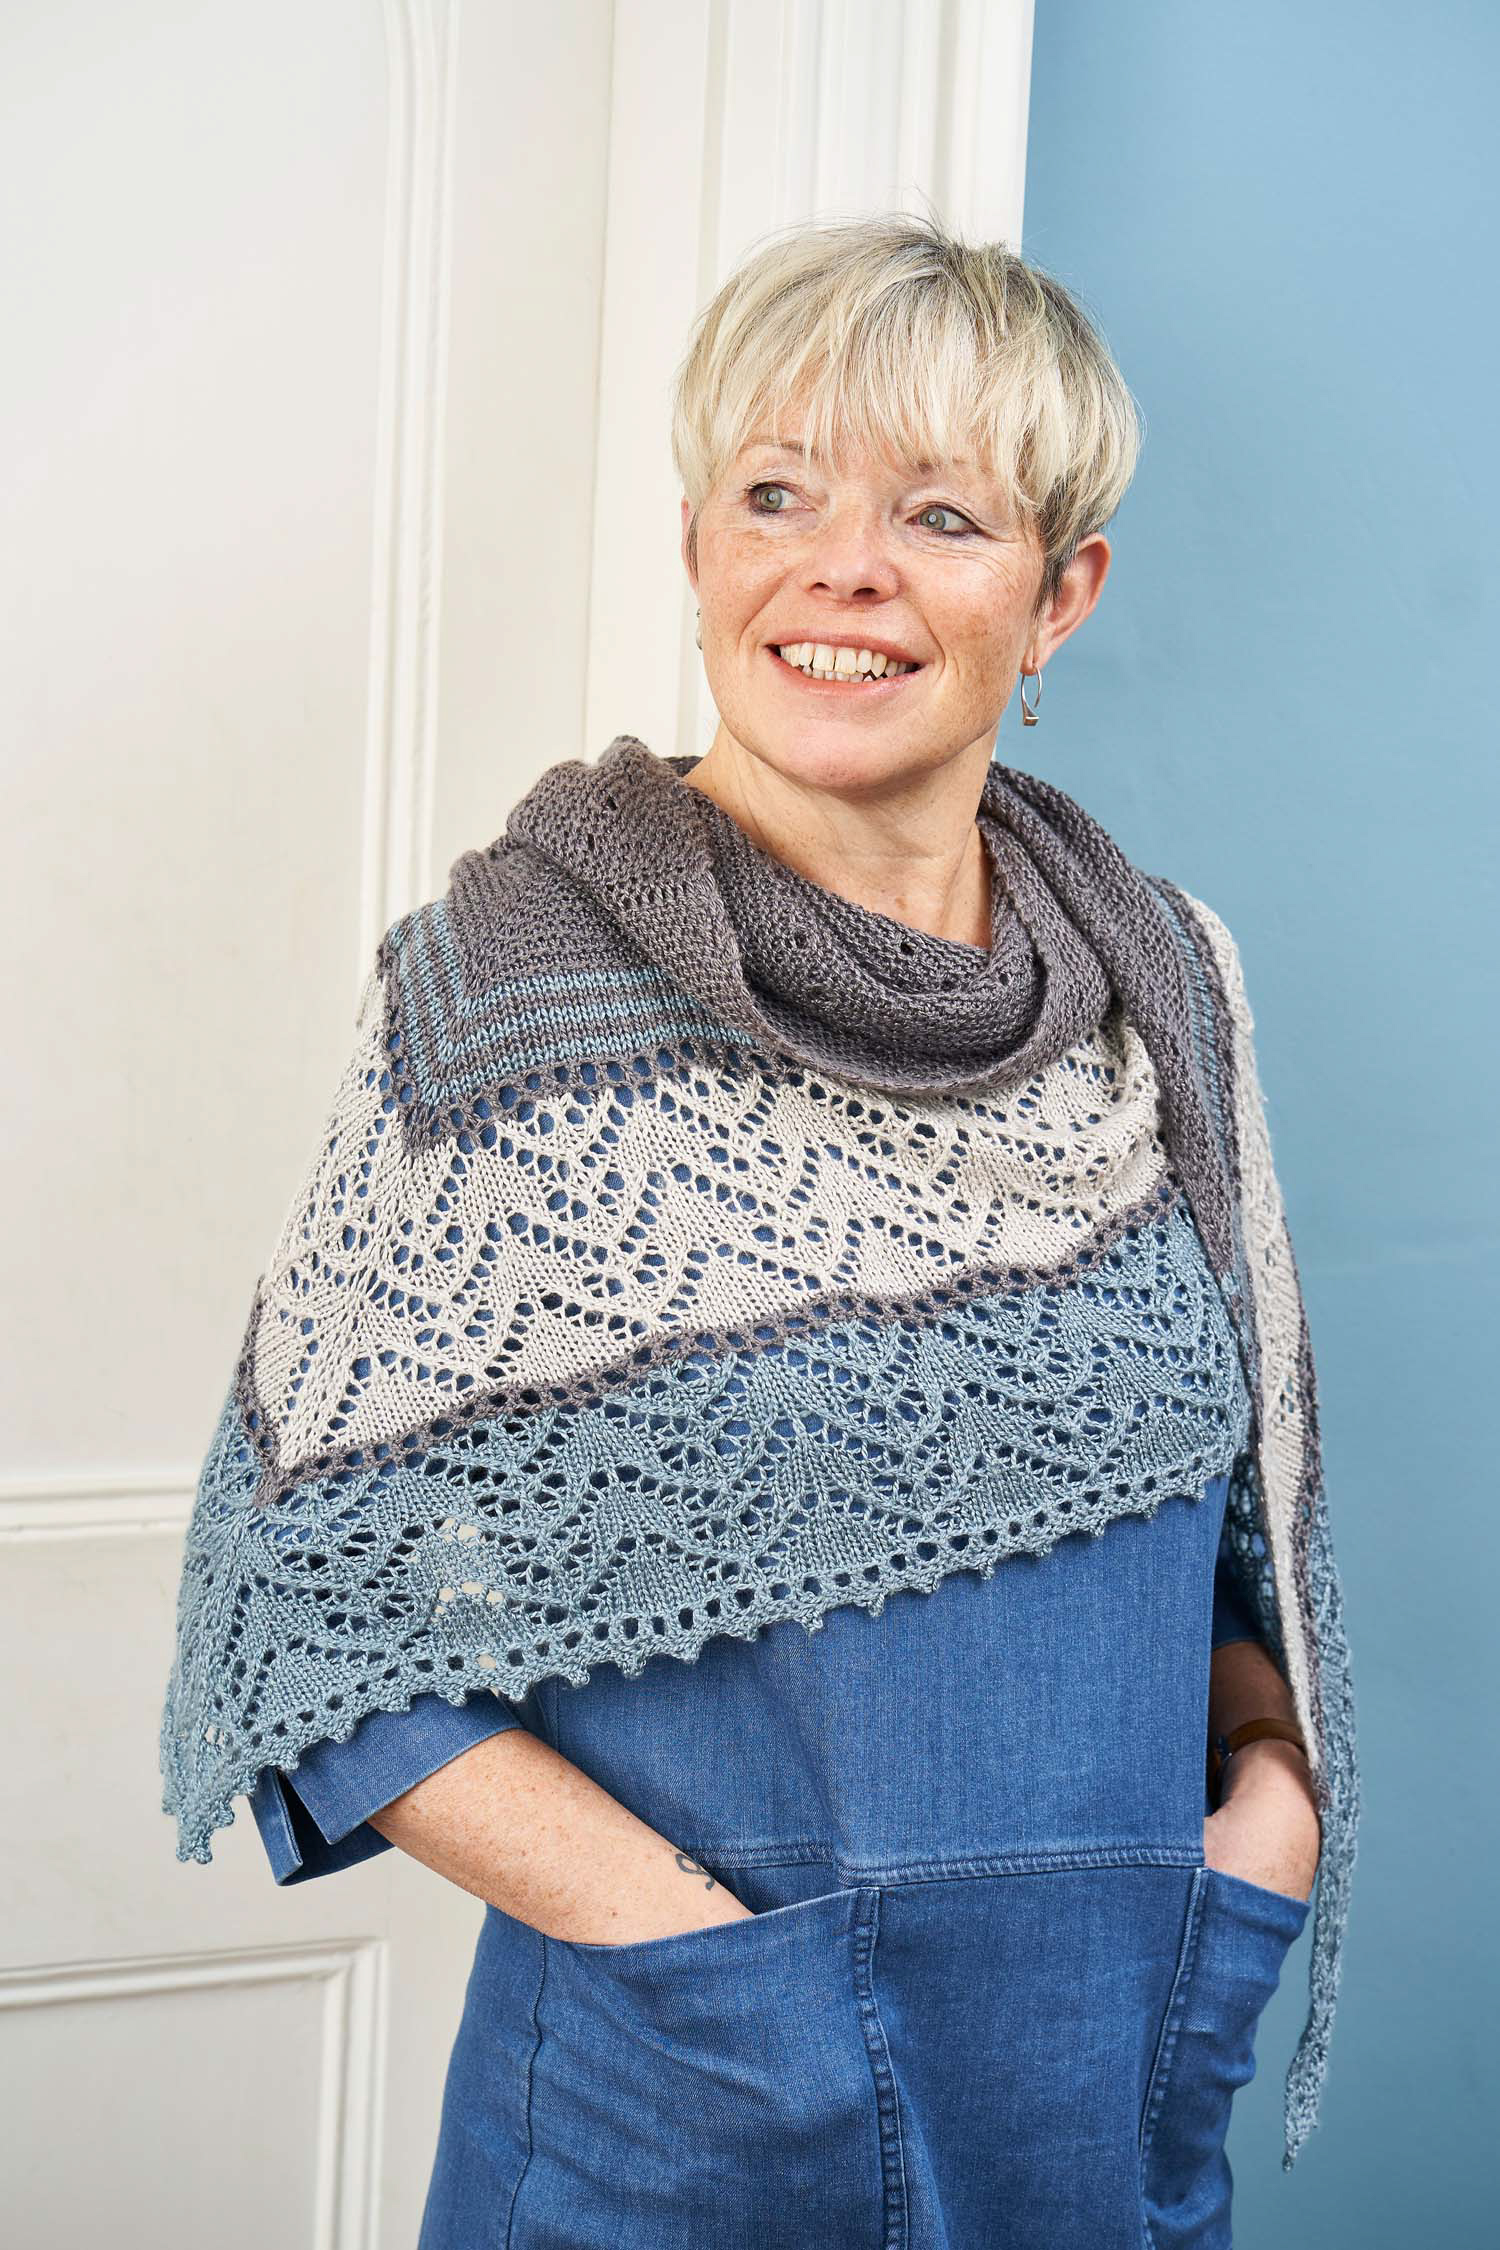 The Sterlyn Shawl by Joji Locatelli, April's Boost Your Knitting Pattern. Photo © Jesse Wild.